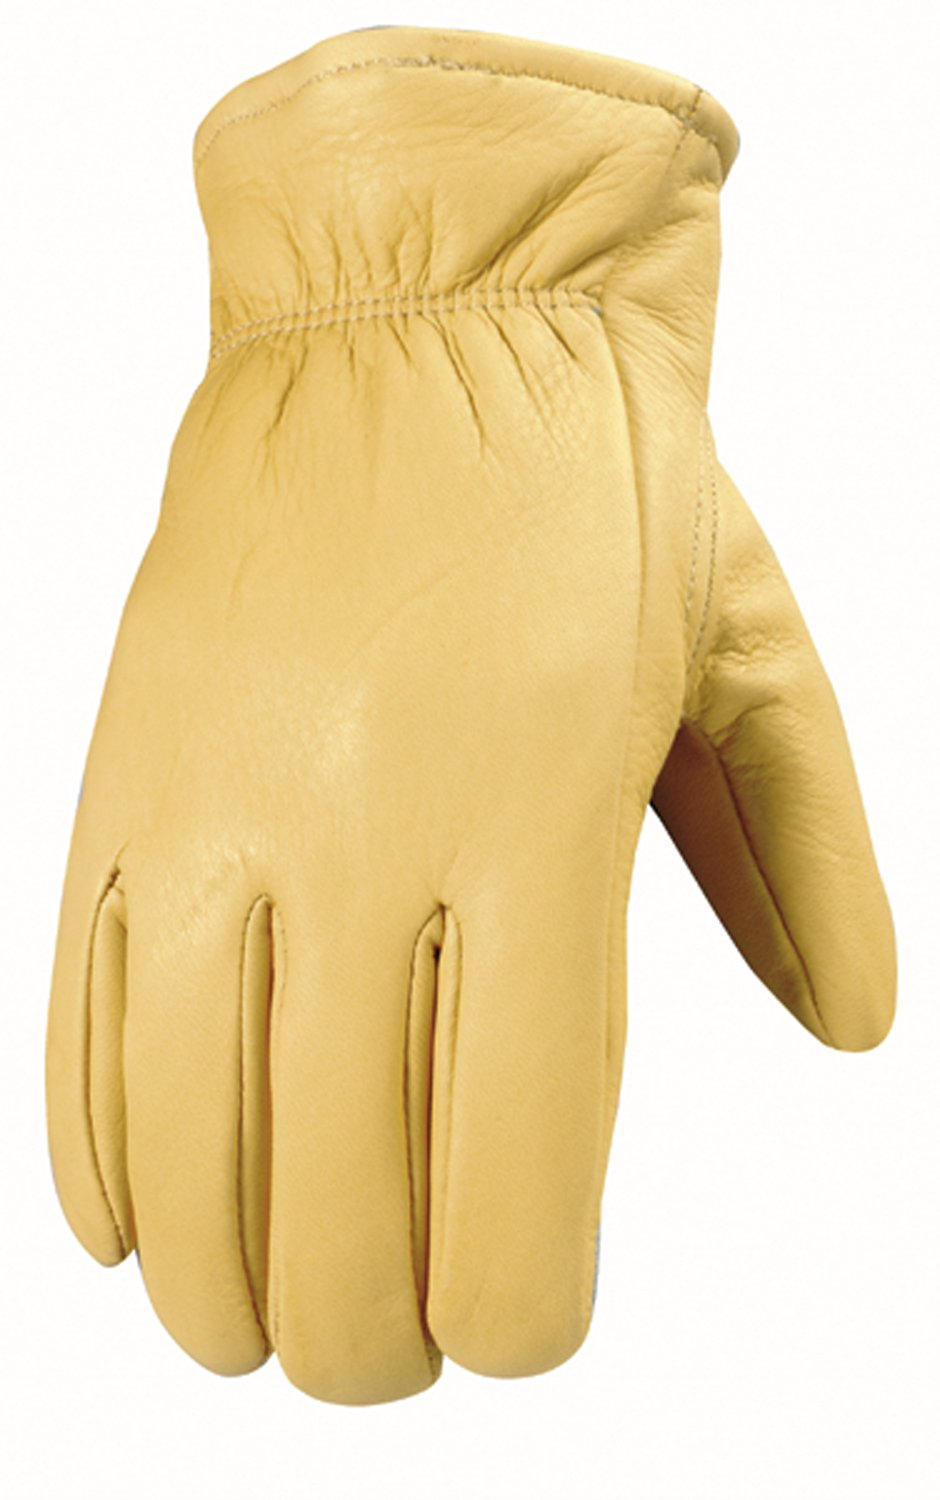 Deer hide leather work gloves - Wells Lamont Leather Work Gloves Insulated Grain Deerskin Large 963l Insulated Deerskin Gloves Amazon Com